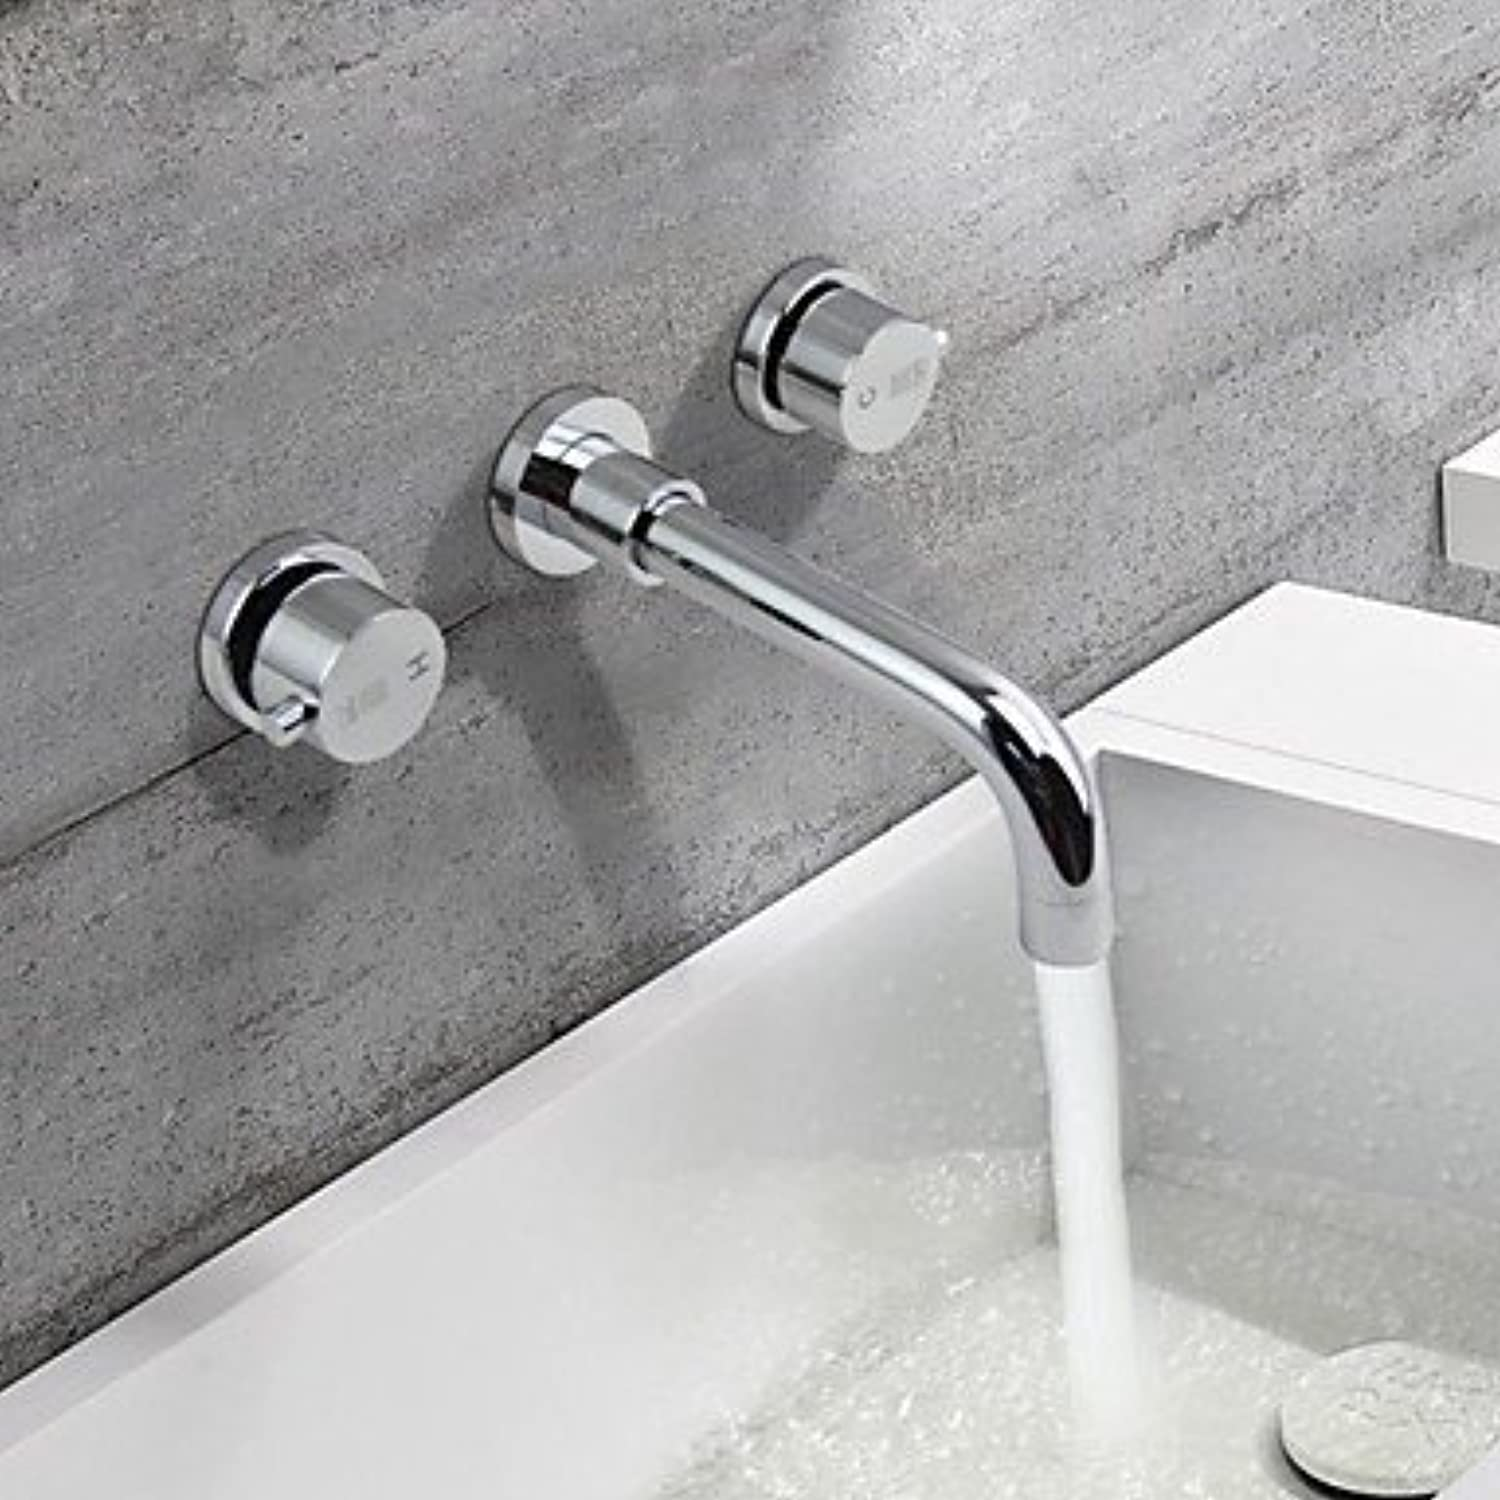 XINXI HOME Basin Tap Chrome Finish Brass Three Holes Two Two Two Handles Sink Faucet Bathroom Faucet Basin Mixer Tap 031158